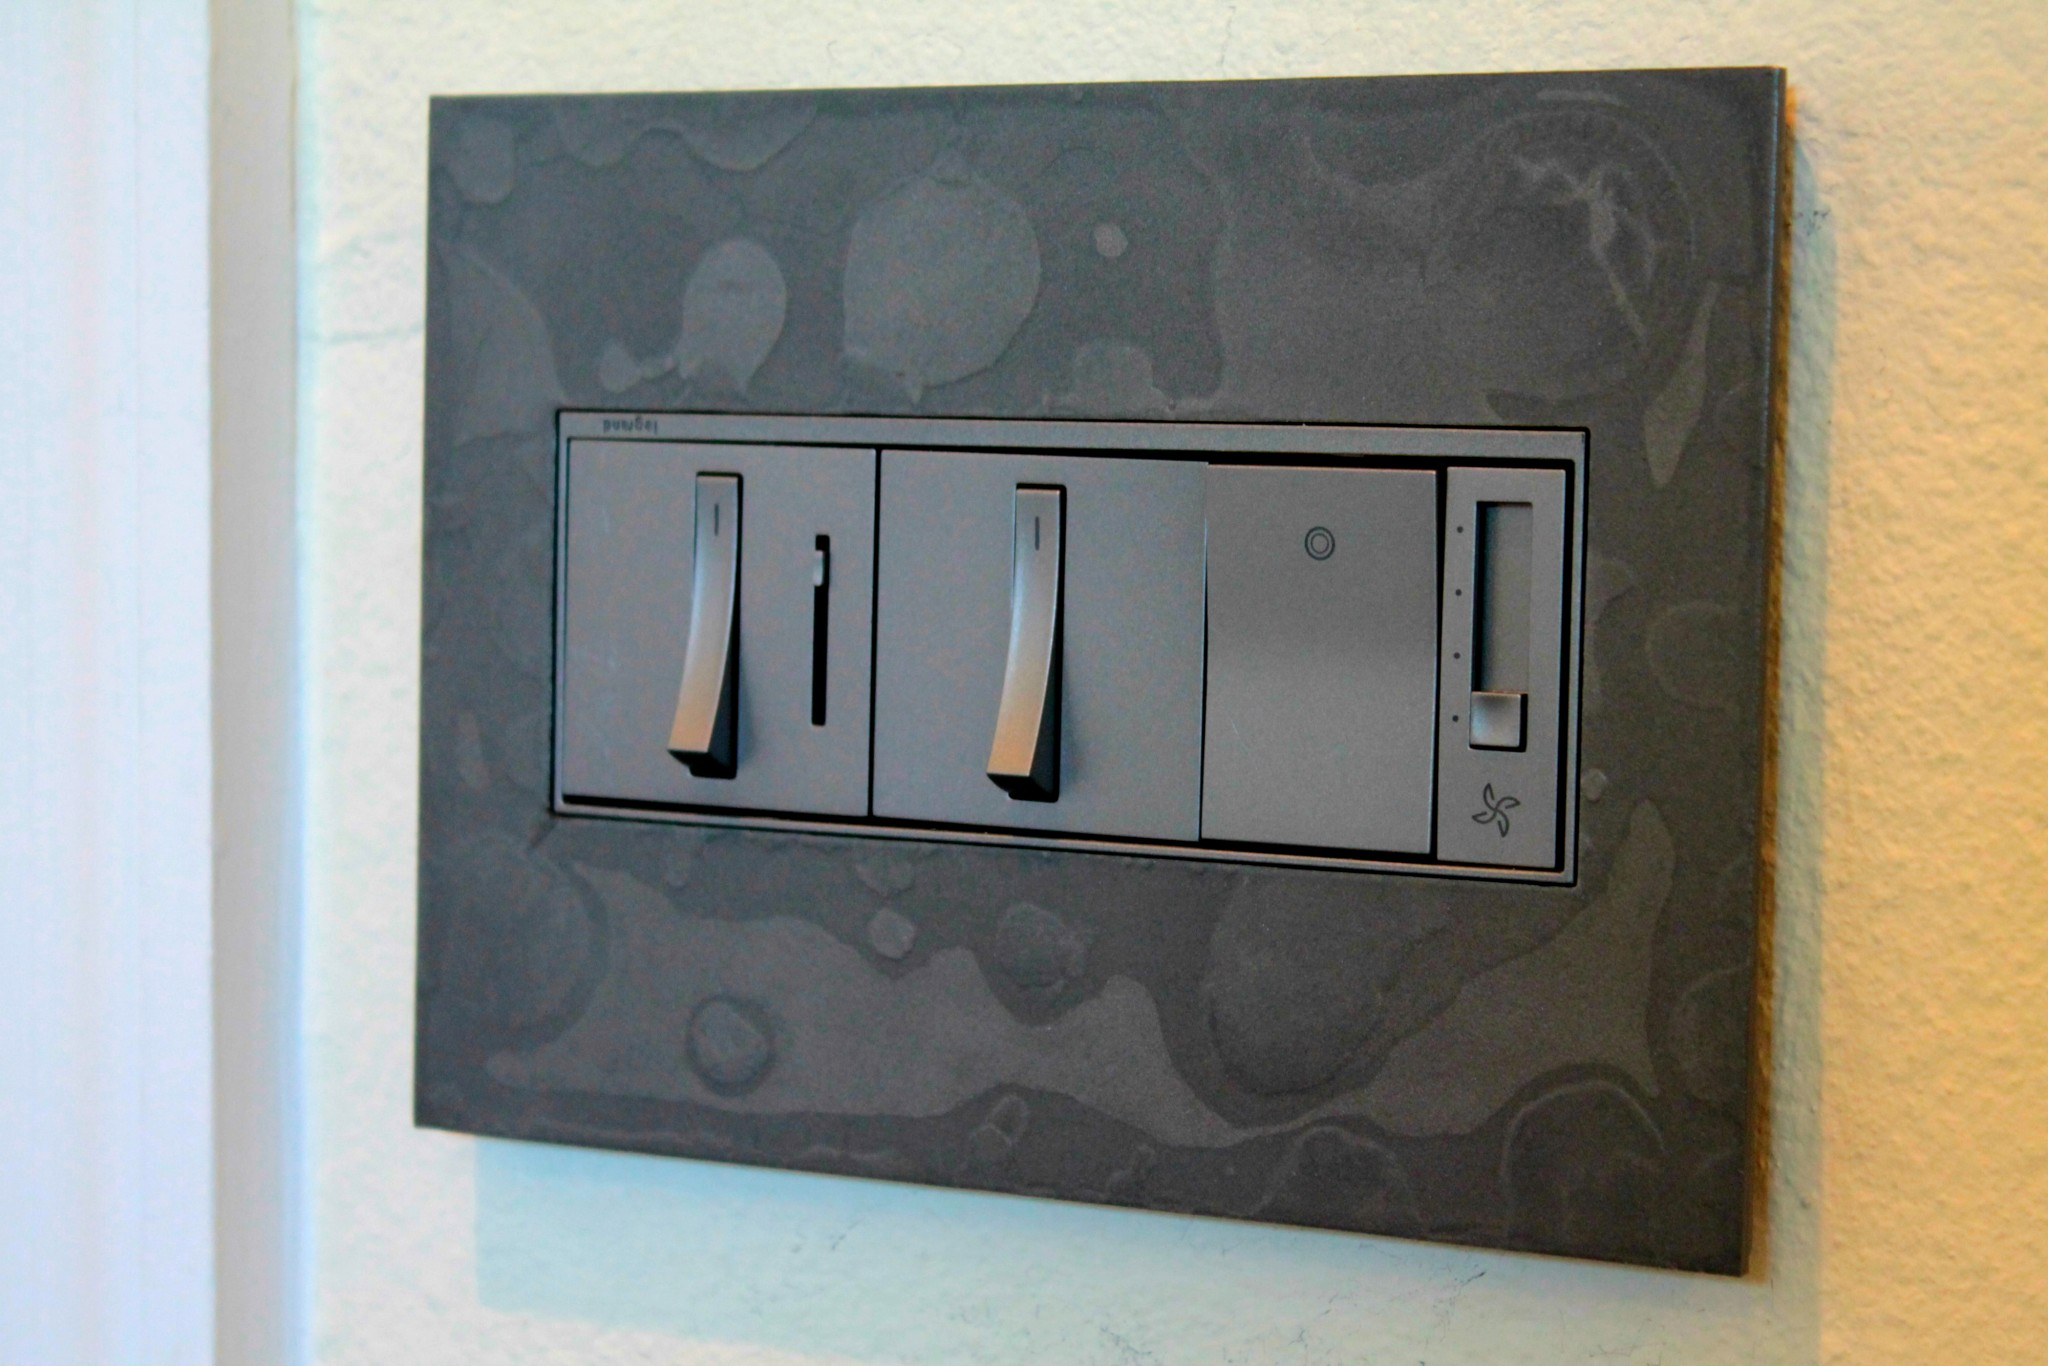 Ornate Switch Plates Decorative Switch Plate From Legrand And Hubbardton Forge In